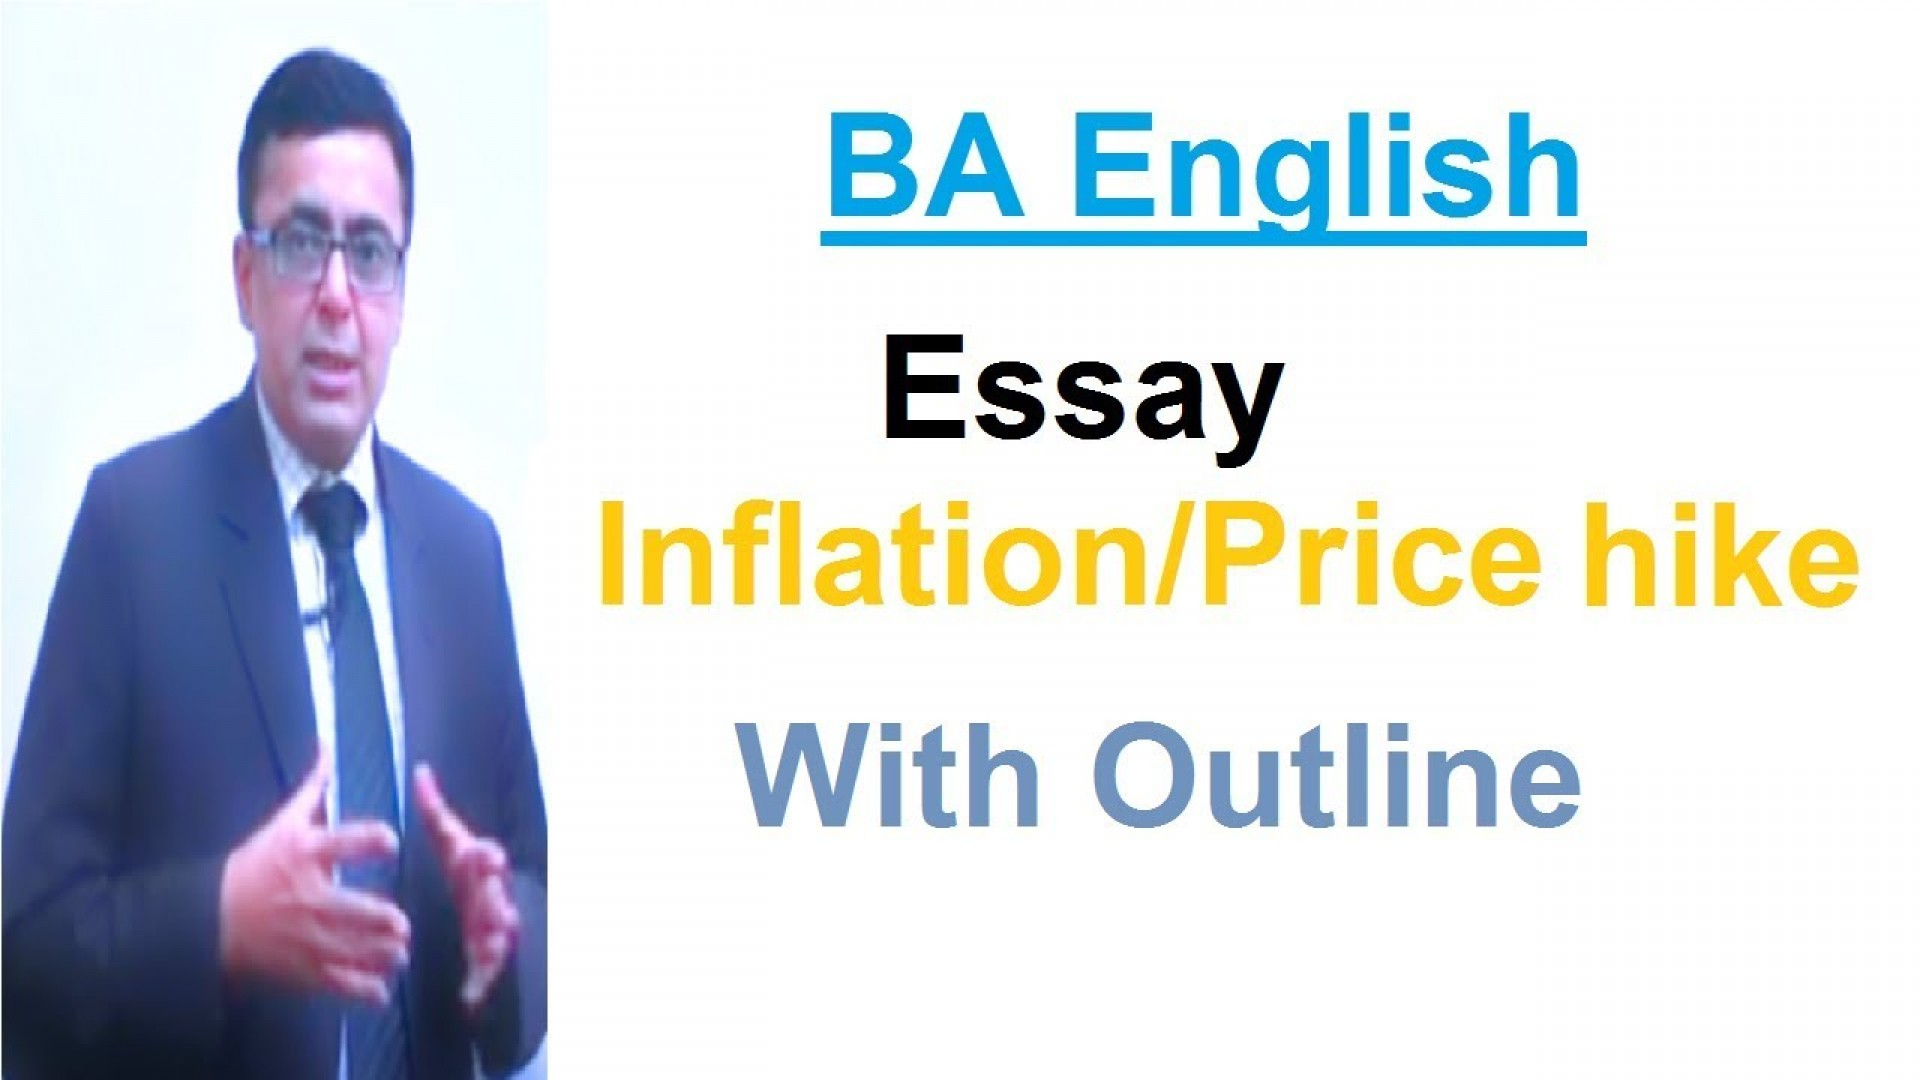 004 Essay Example On Inflation With Outline Stupendous In Pakistan 1920